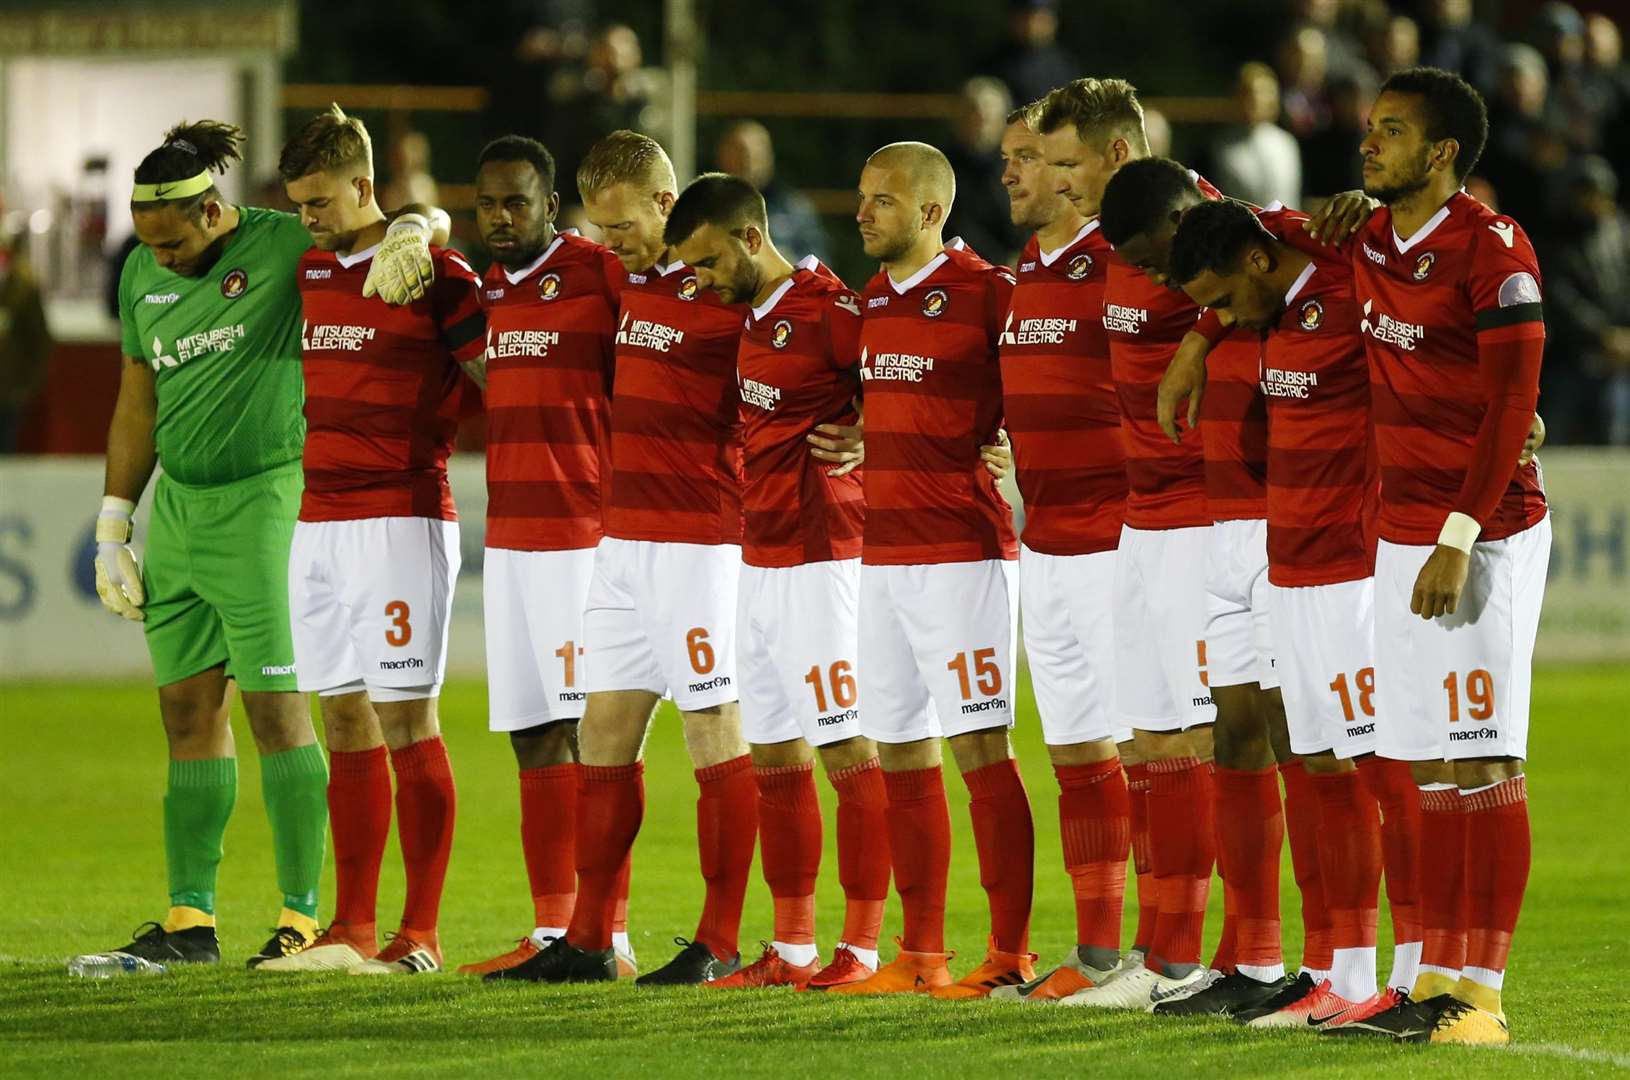 Ebbsfleet's players observing a minute's silence earlier this season. Picture: Andy Jones